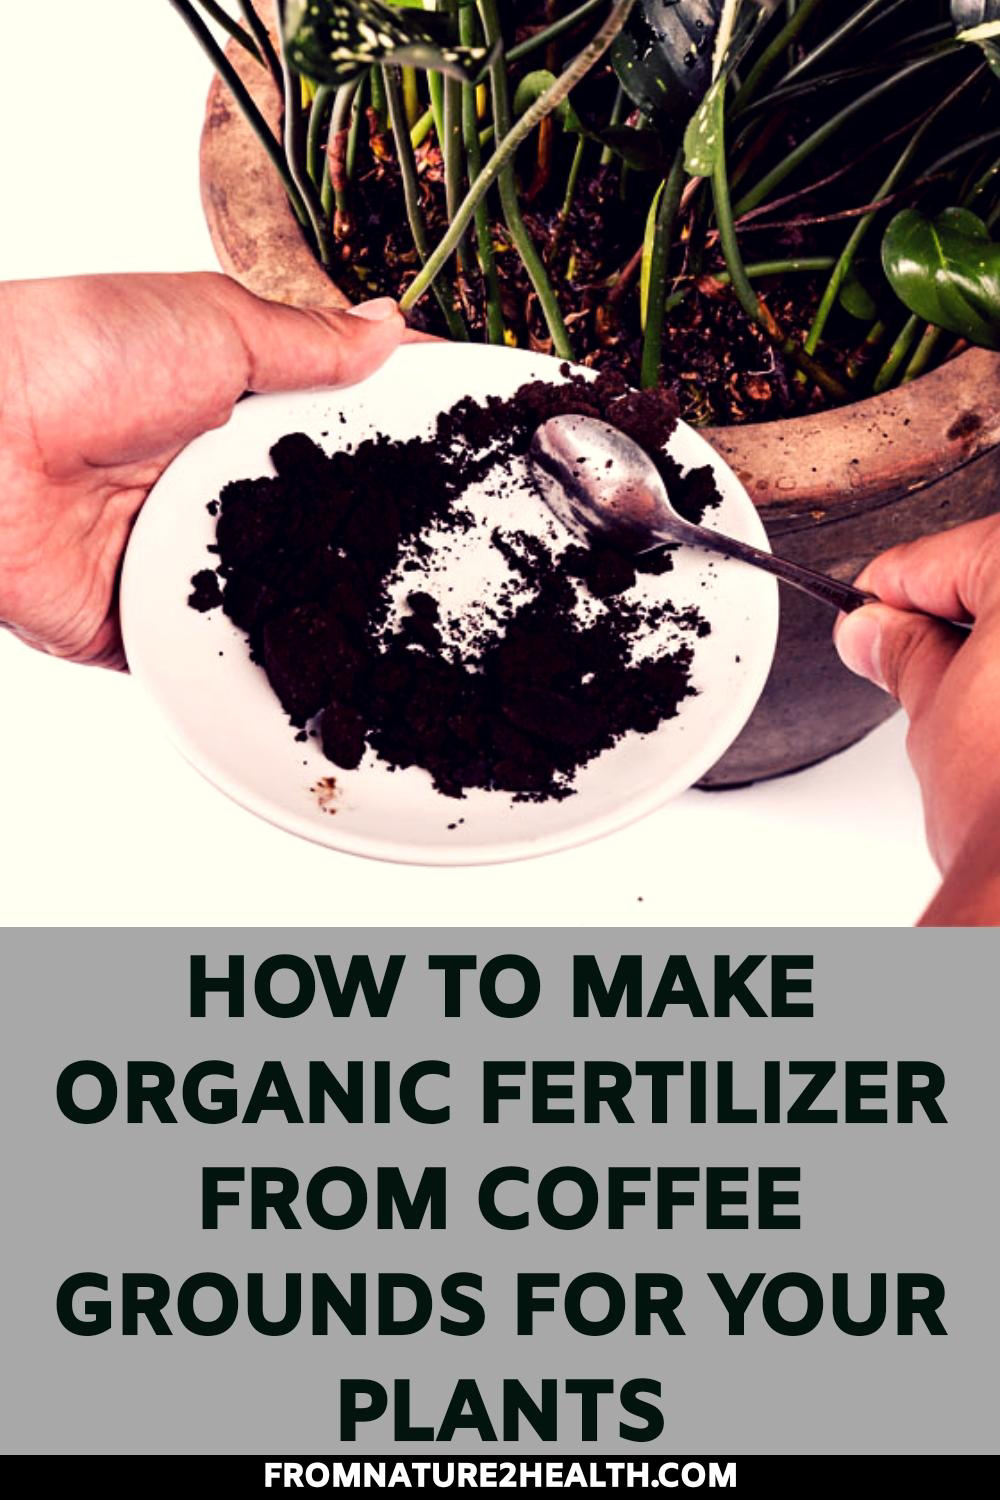 How to Make Organic Fertilizer from Coffee Grounds for Your Plants